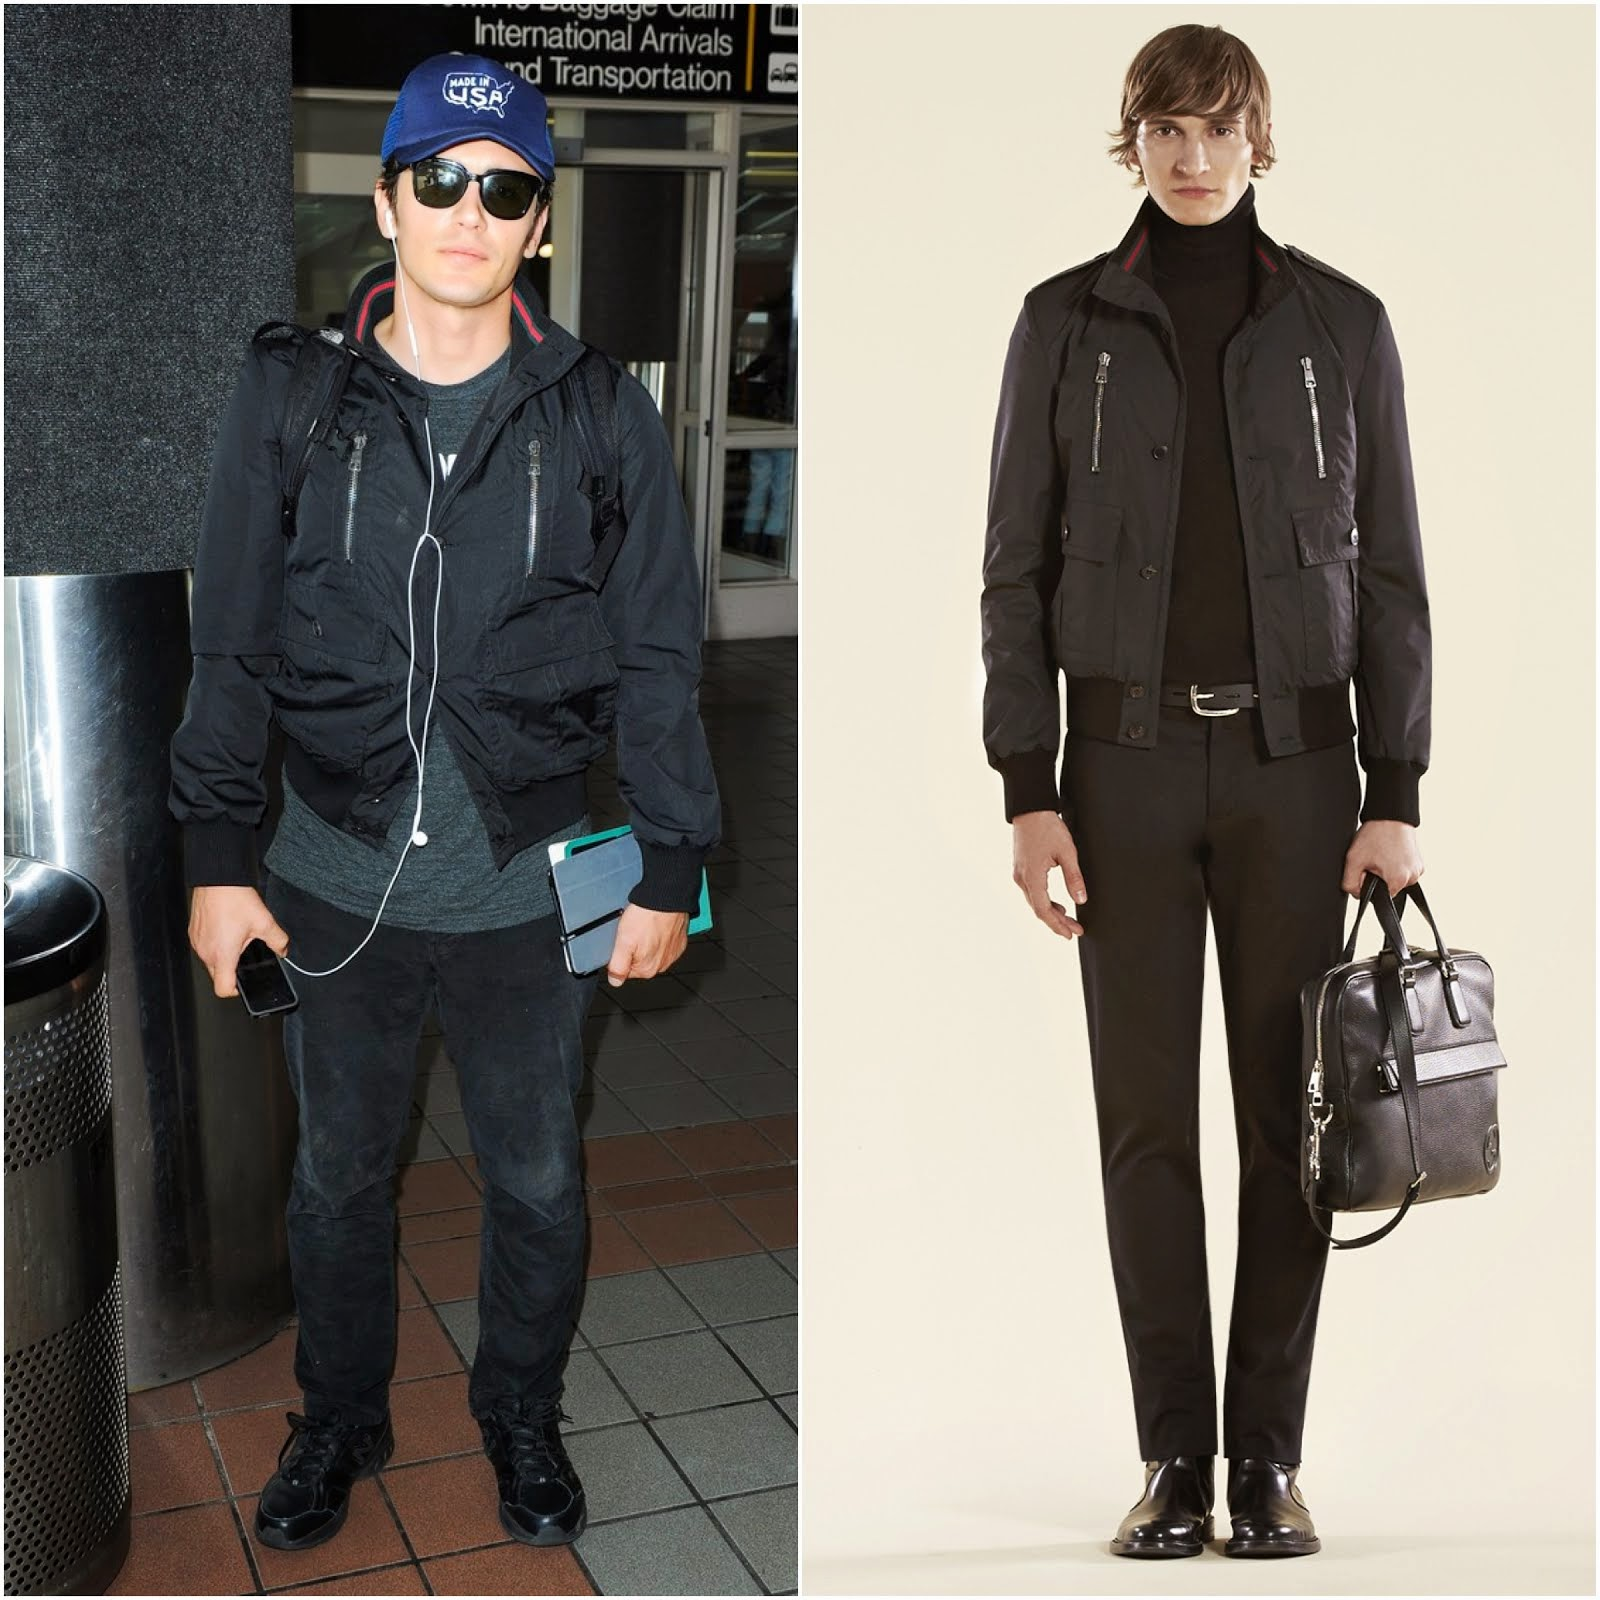 00O00 Menswear Blog: James Franco's Gucci black light padded bomber jacket - LAX airport August 2013